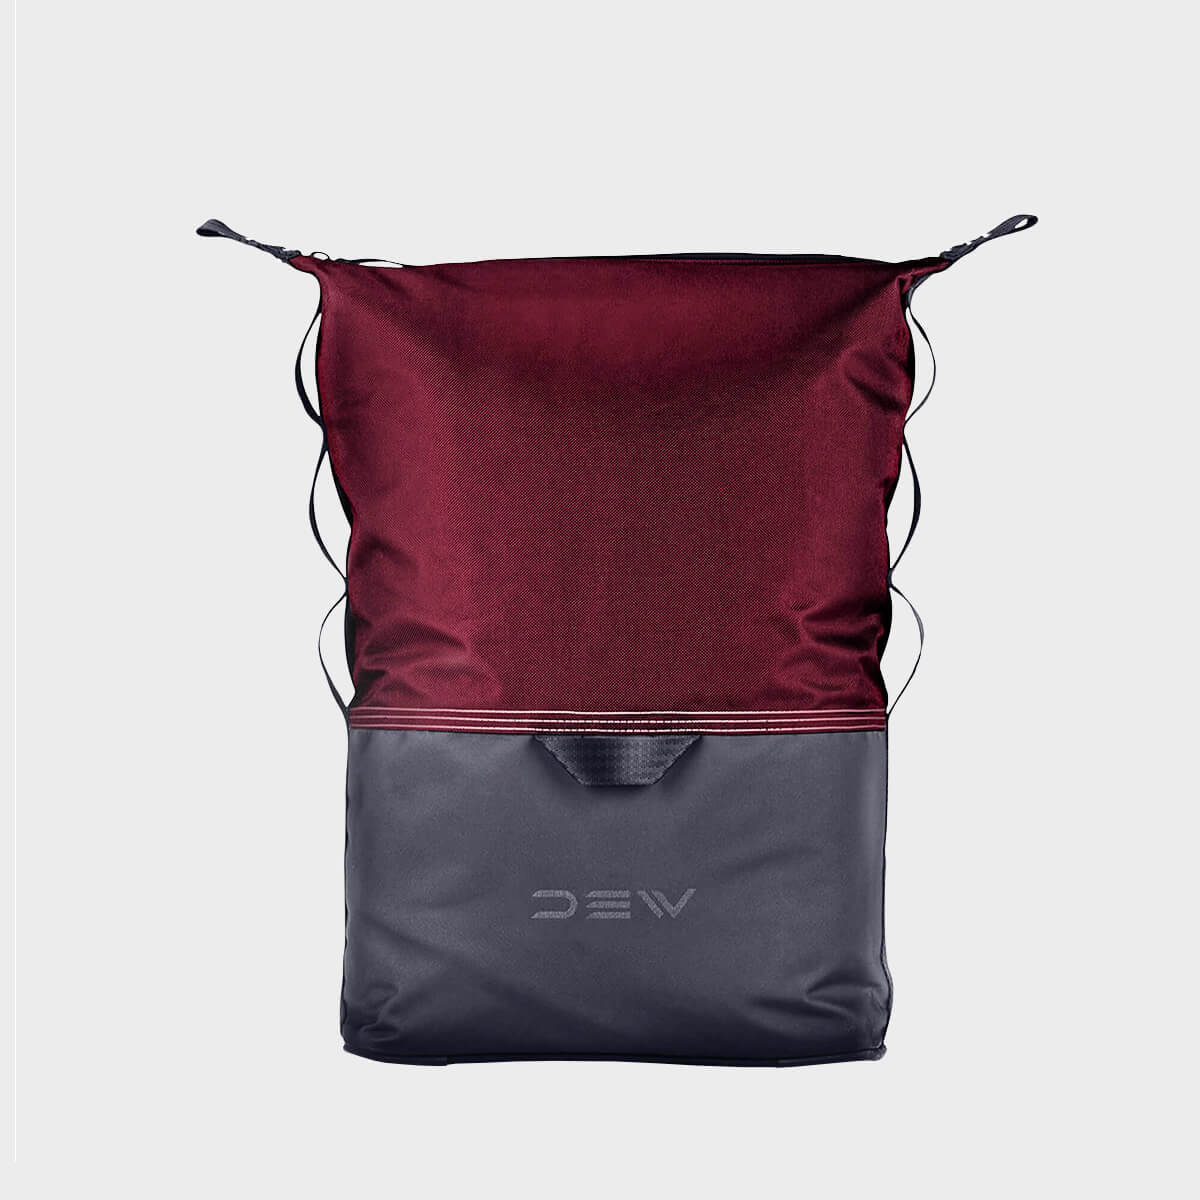 Front purple minimalistic backpack 15 liter